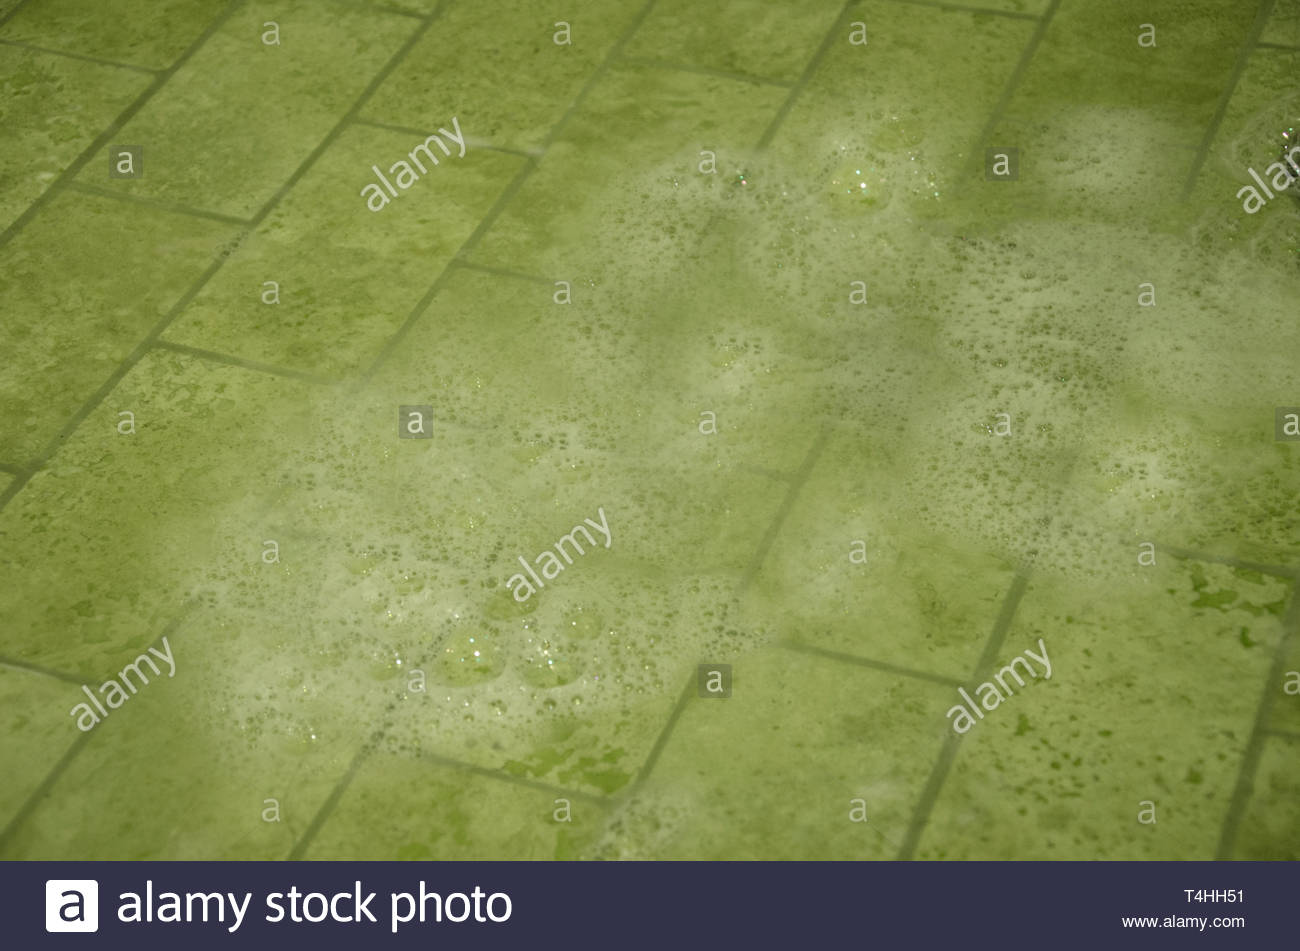 Soap Suds on Tile - Stock Image